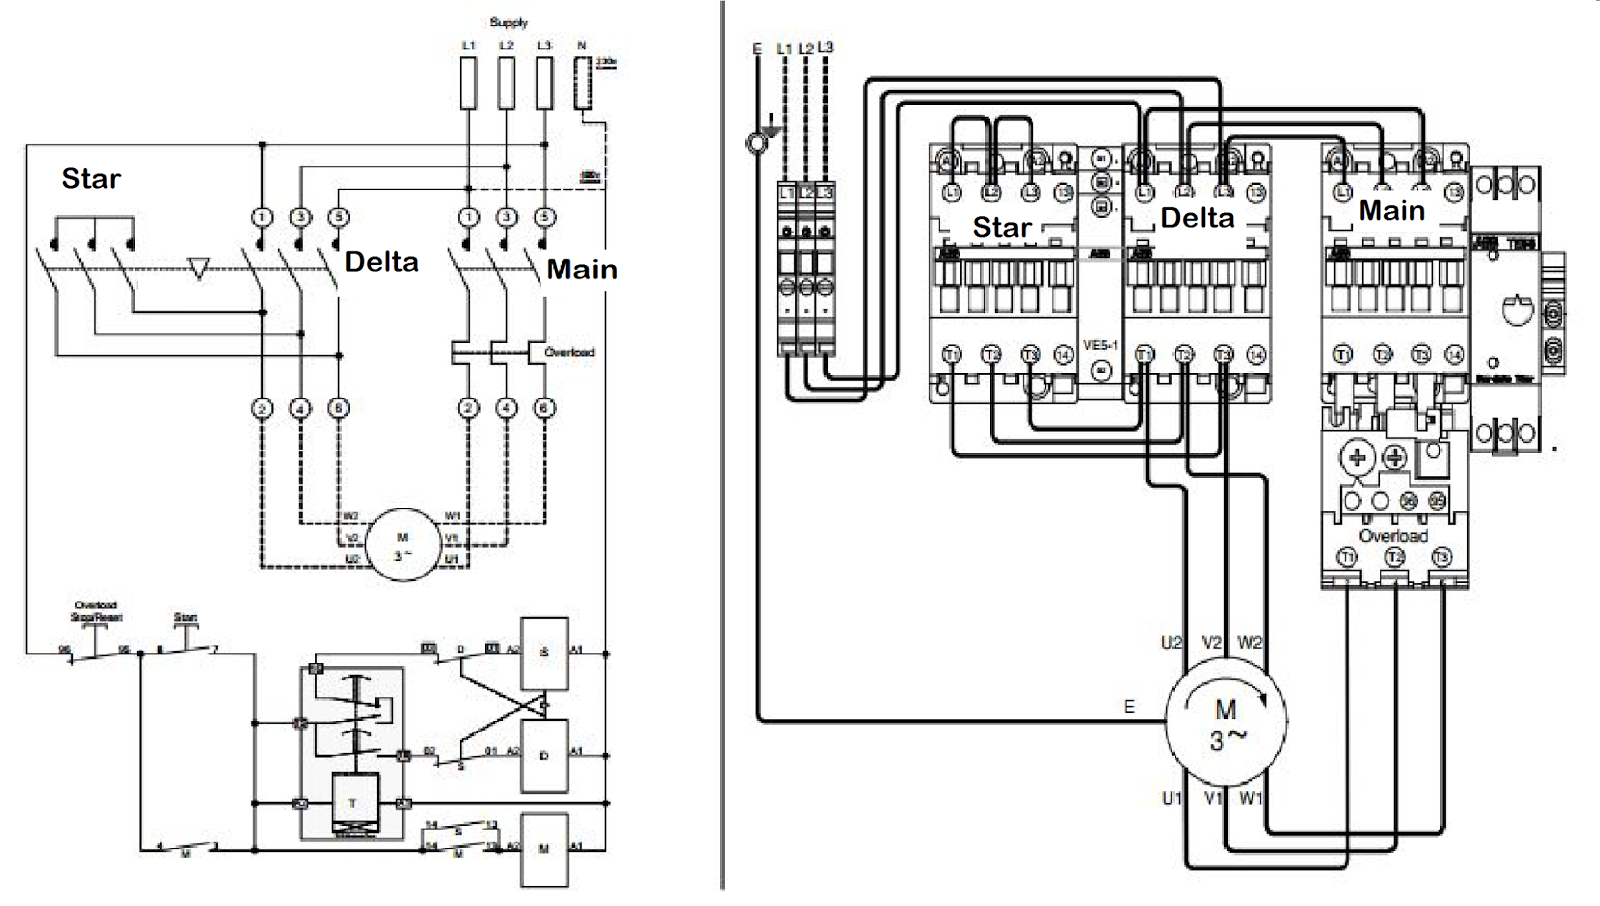 Wiring diagram star delta auto manual free download wiring diagram free download wiring diagram star delta starter line diagram and its working principle of wiring asfbconference2016 Gallery